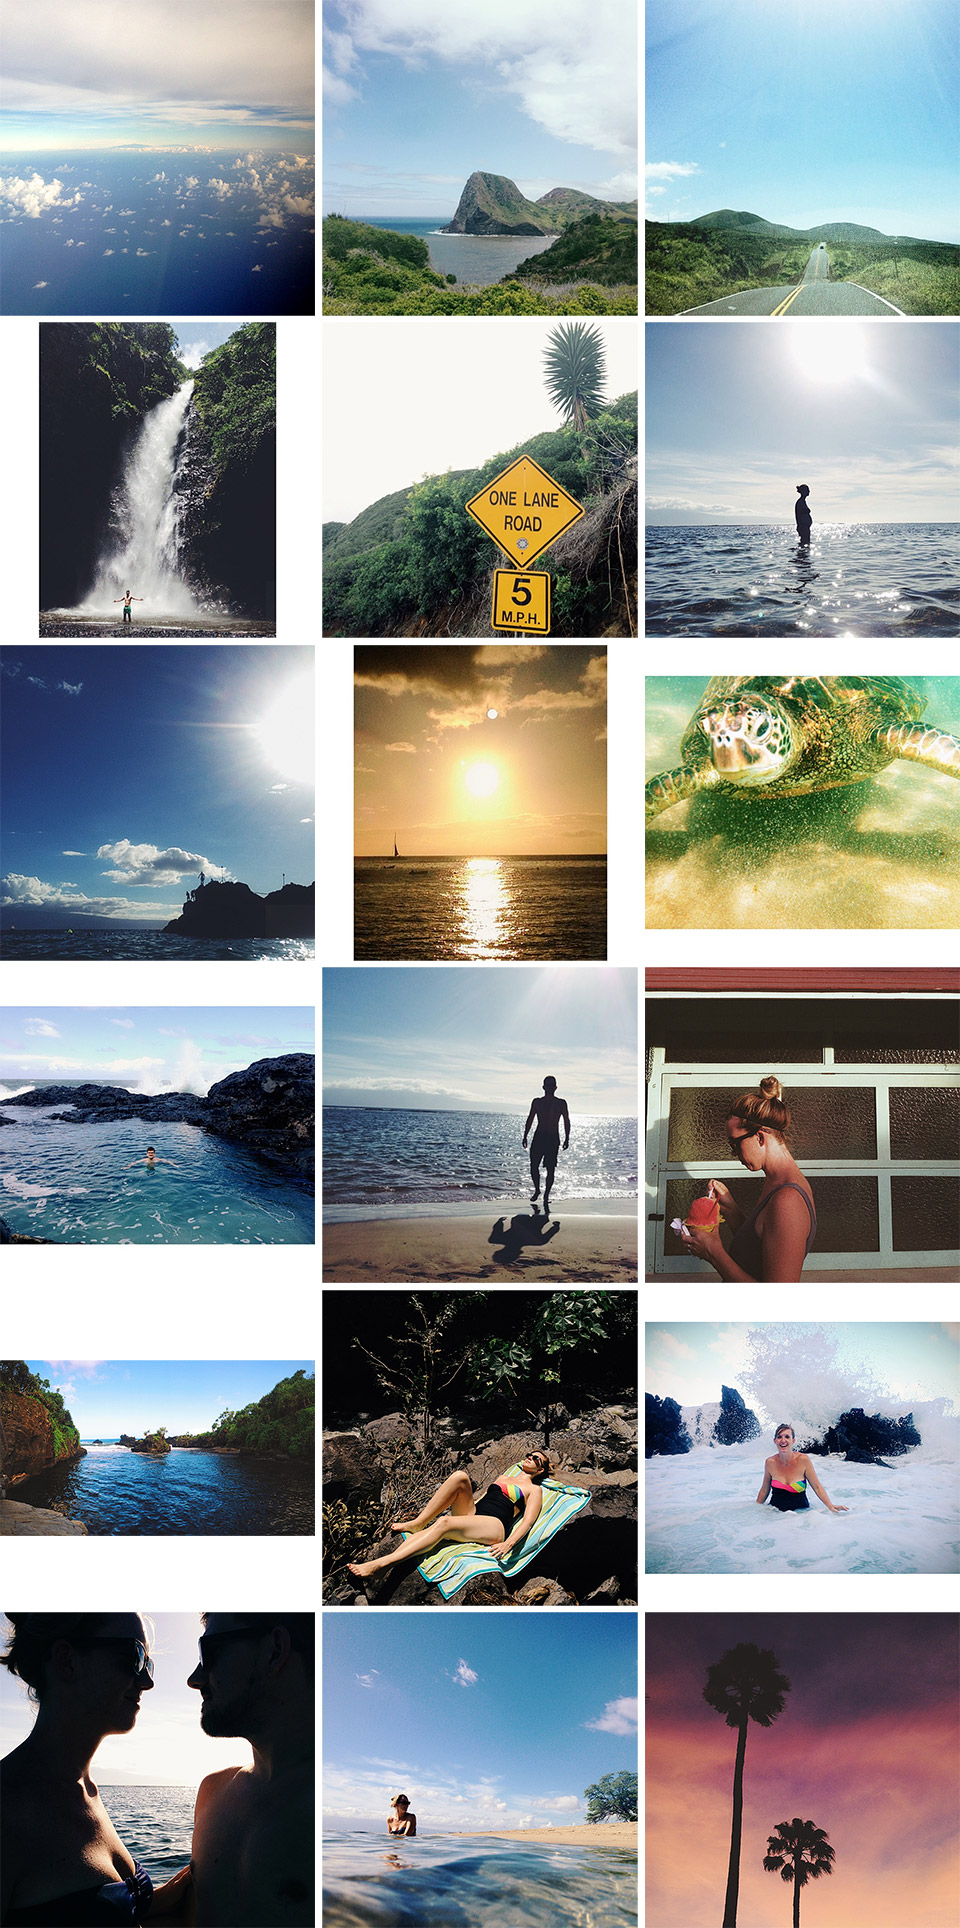 Our Instagram photos from Hawaii